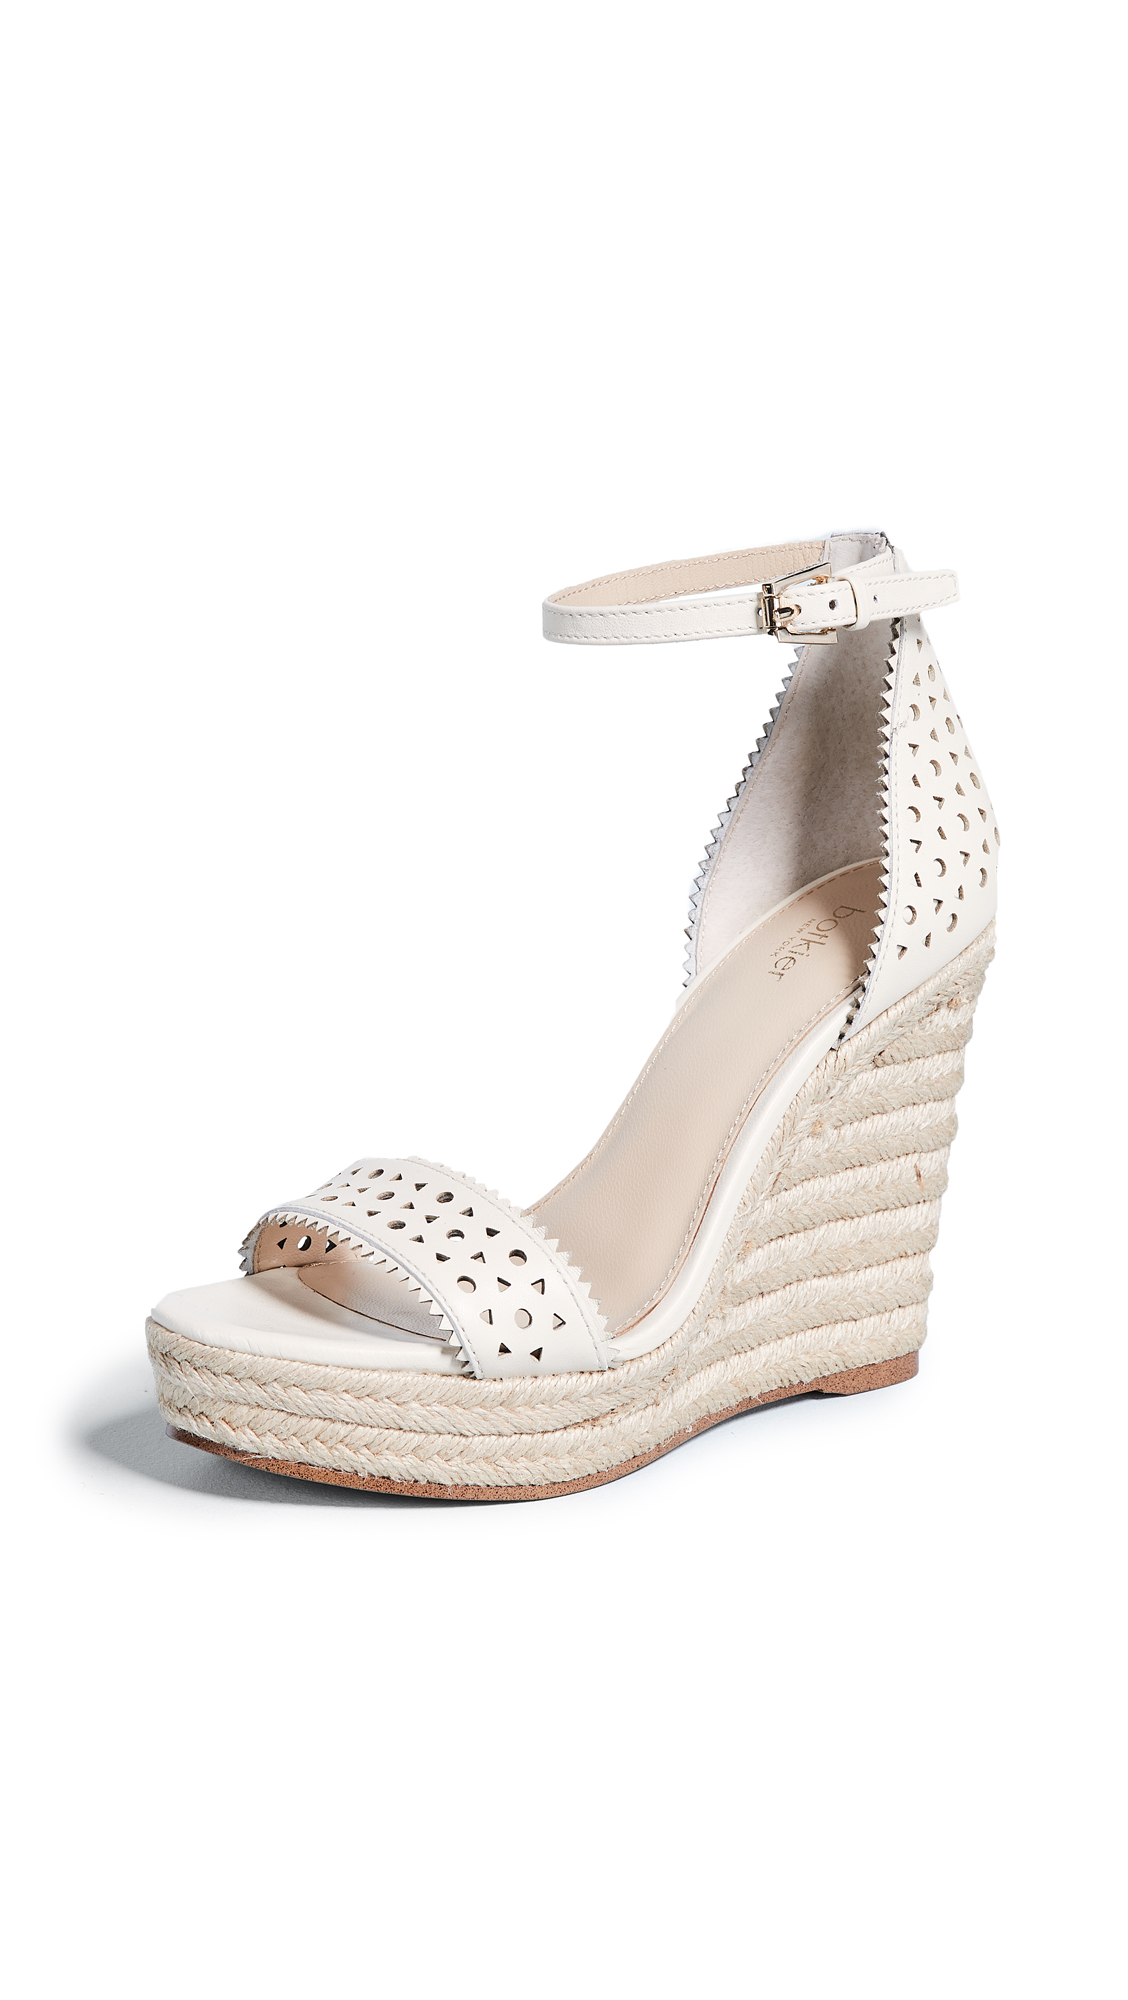 Botkier Jamie Espadrille Wedges In Cream